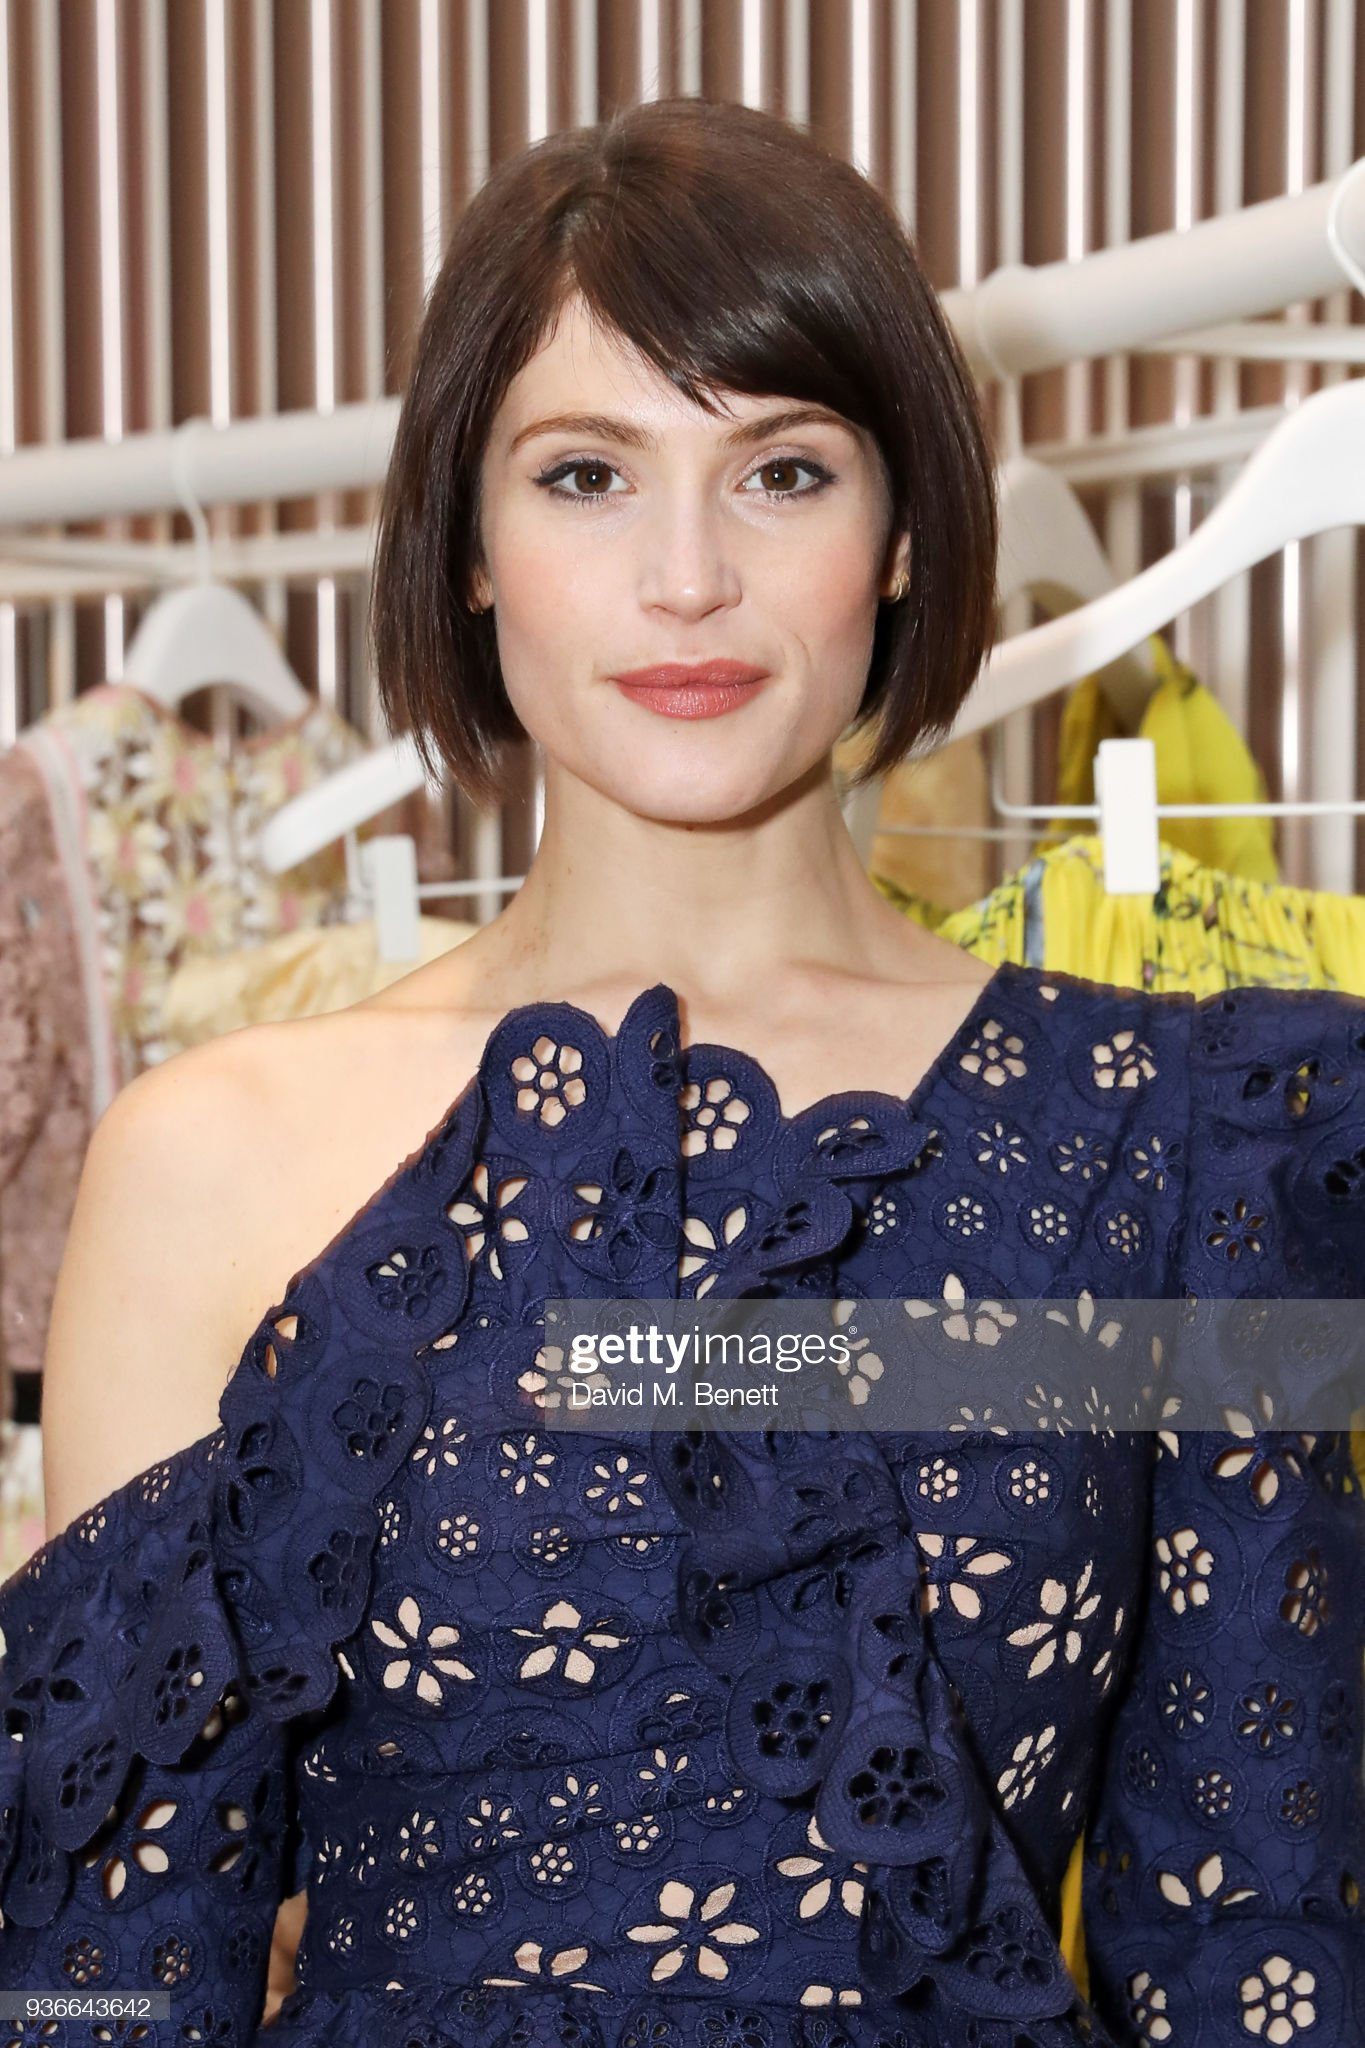 gemma-arterton-attends-the-selfportrait-store-opening-cocktail-party-picture-id936643642